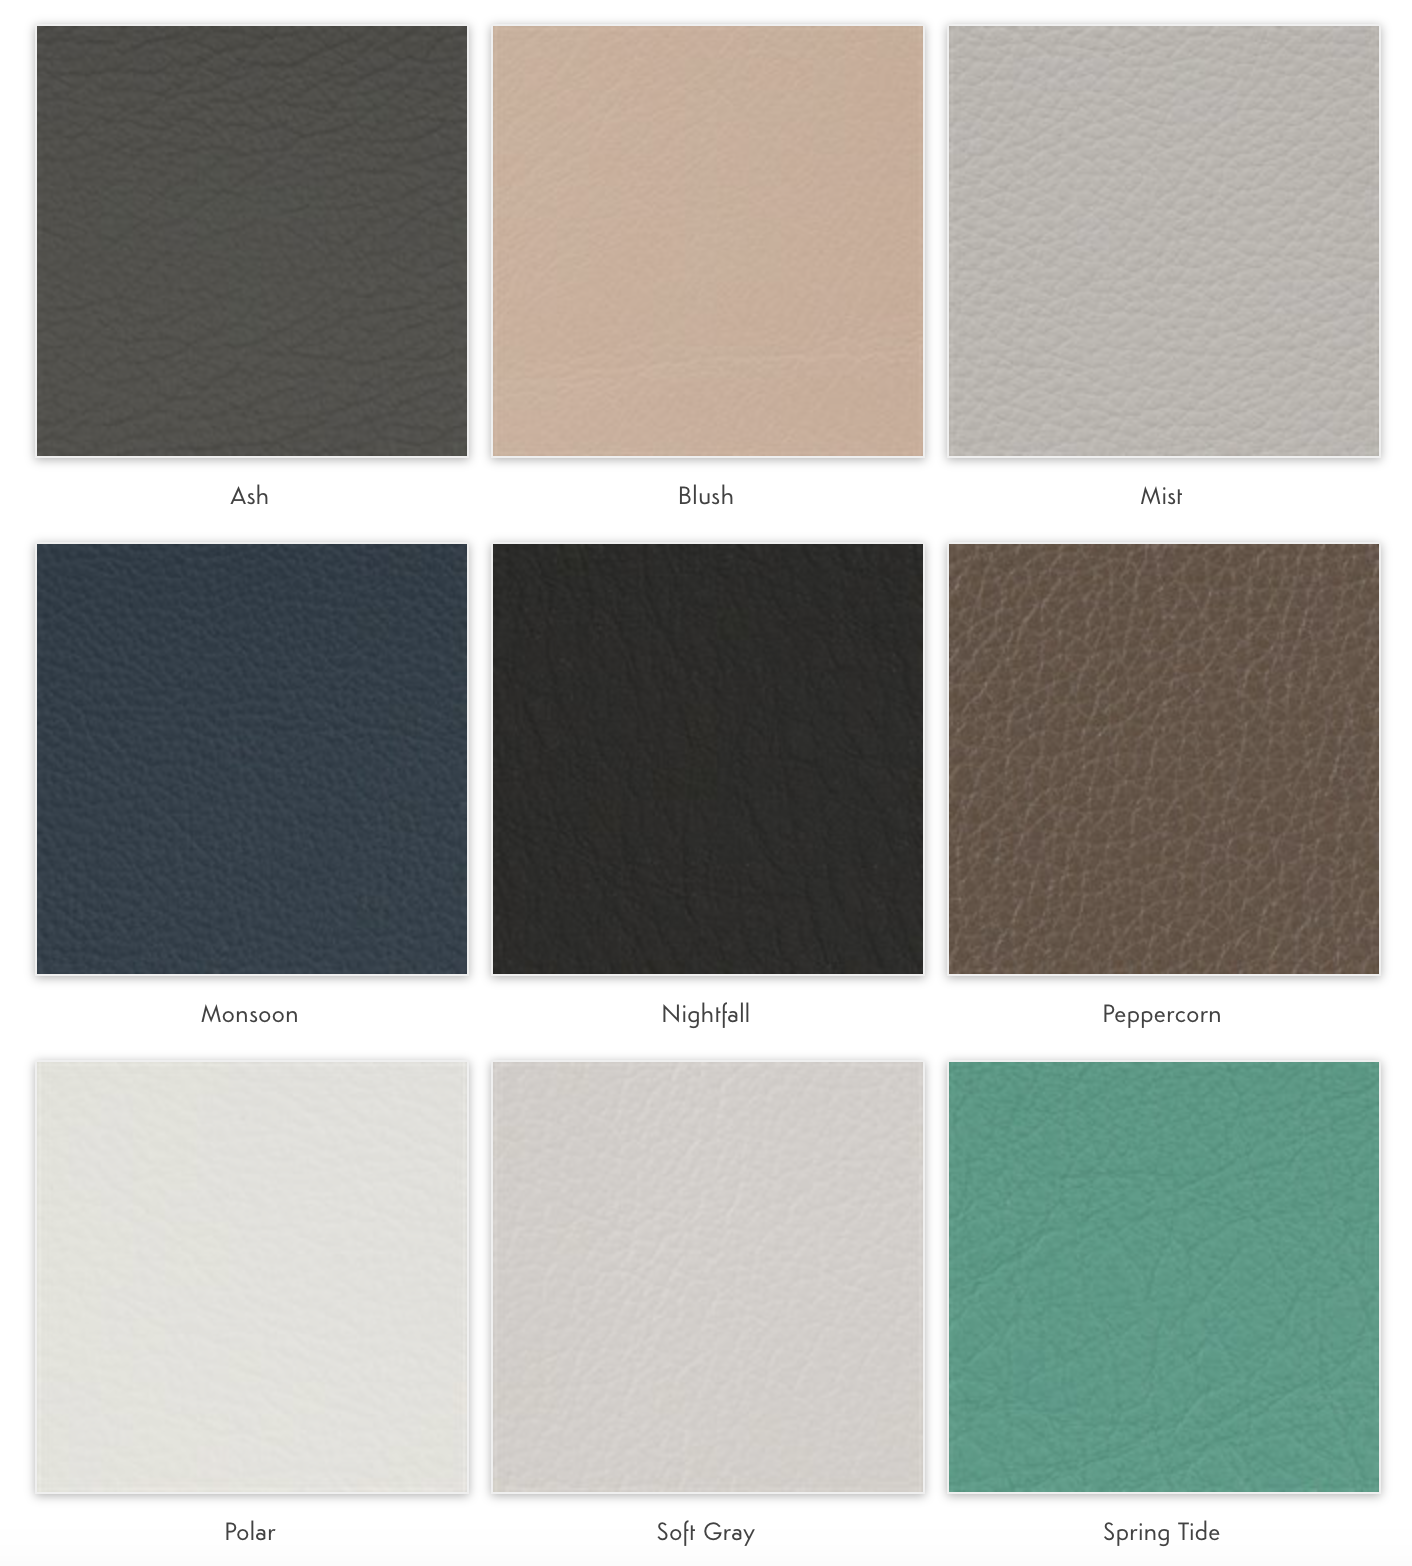 Cover Material  - Please choose one of the leather or Linen options you would like for your album cover.